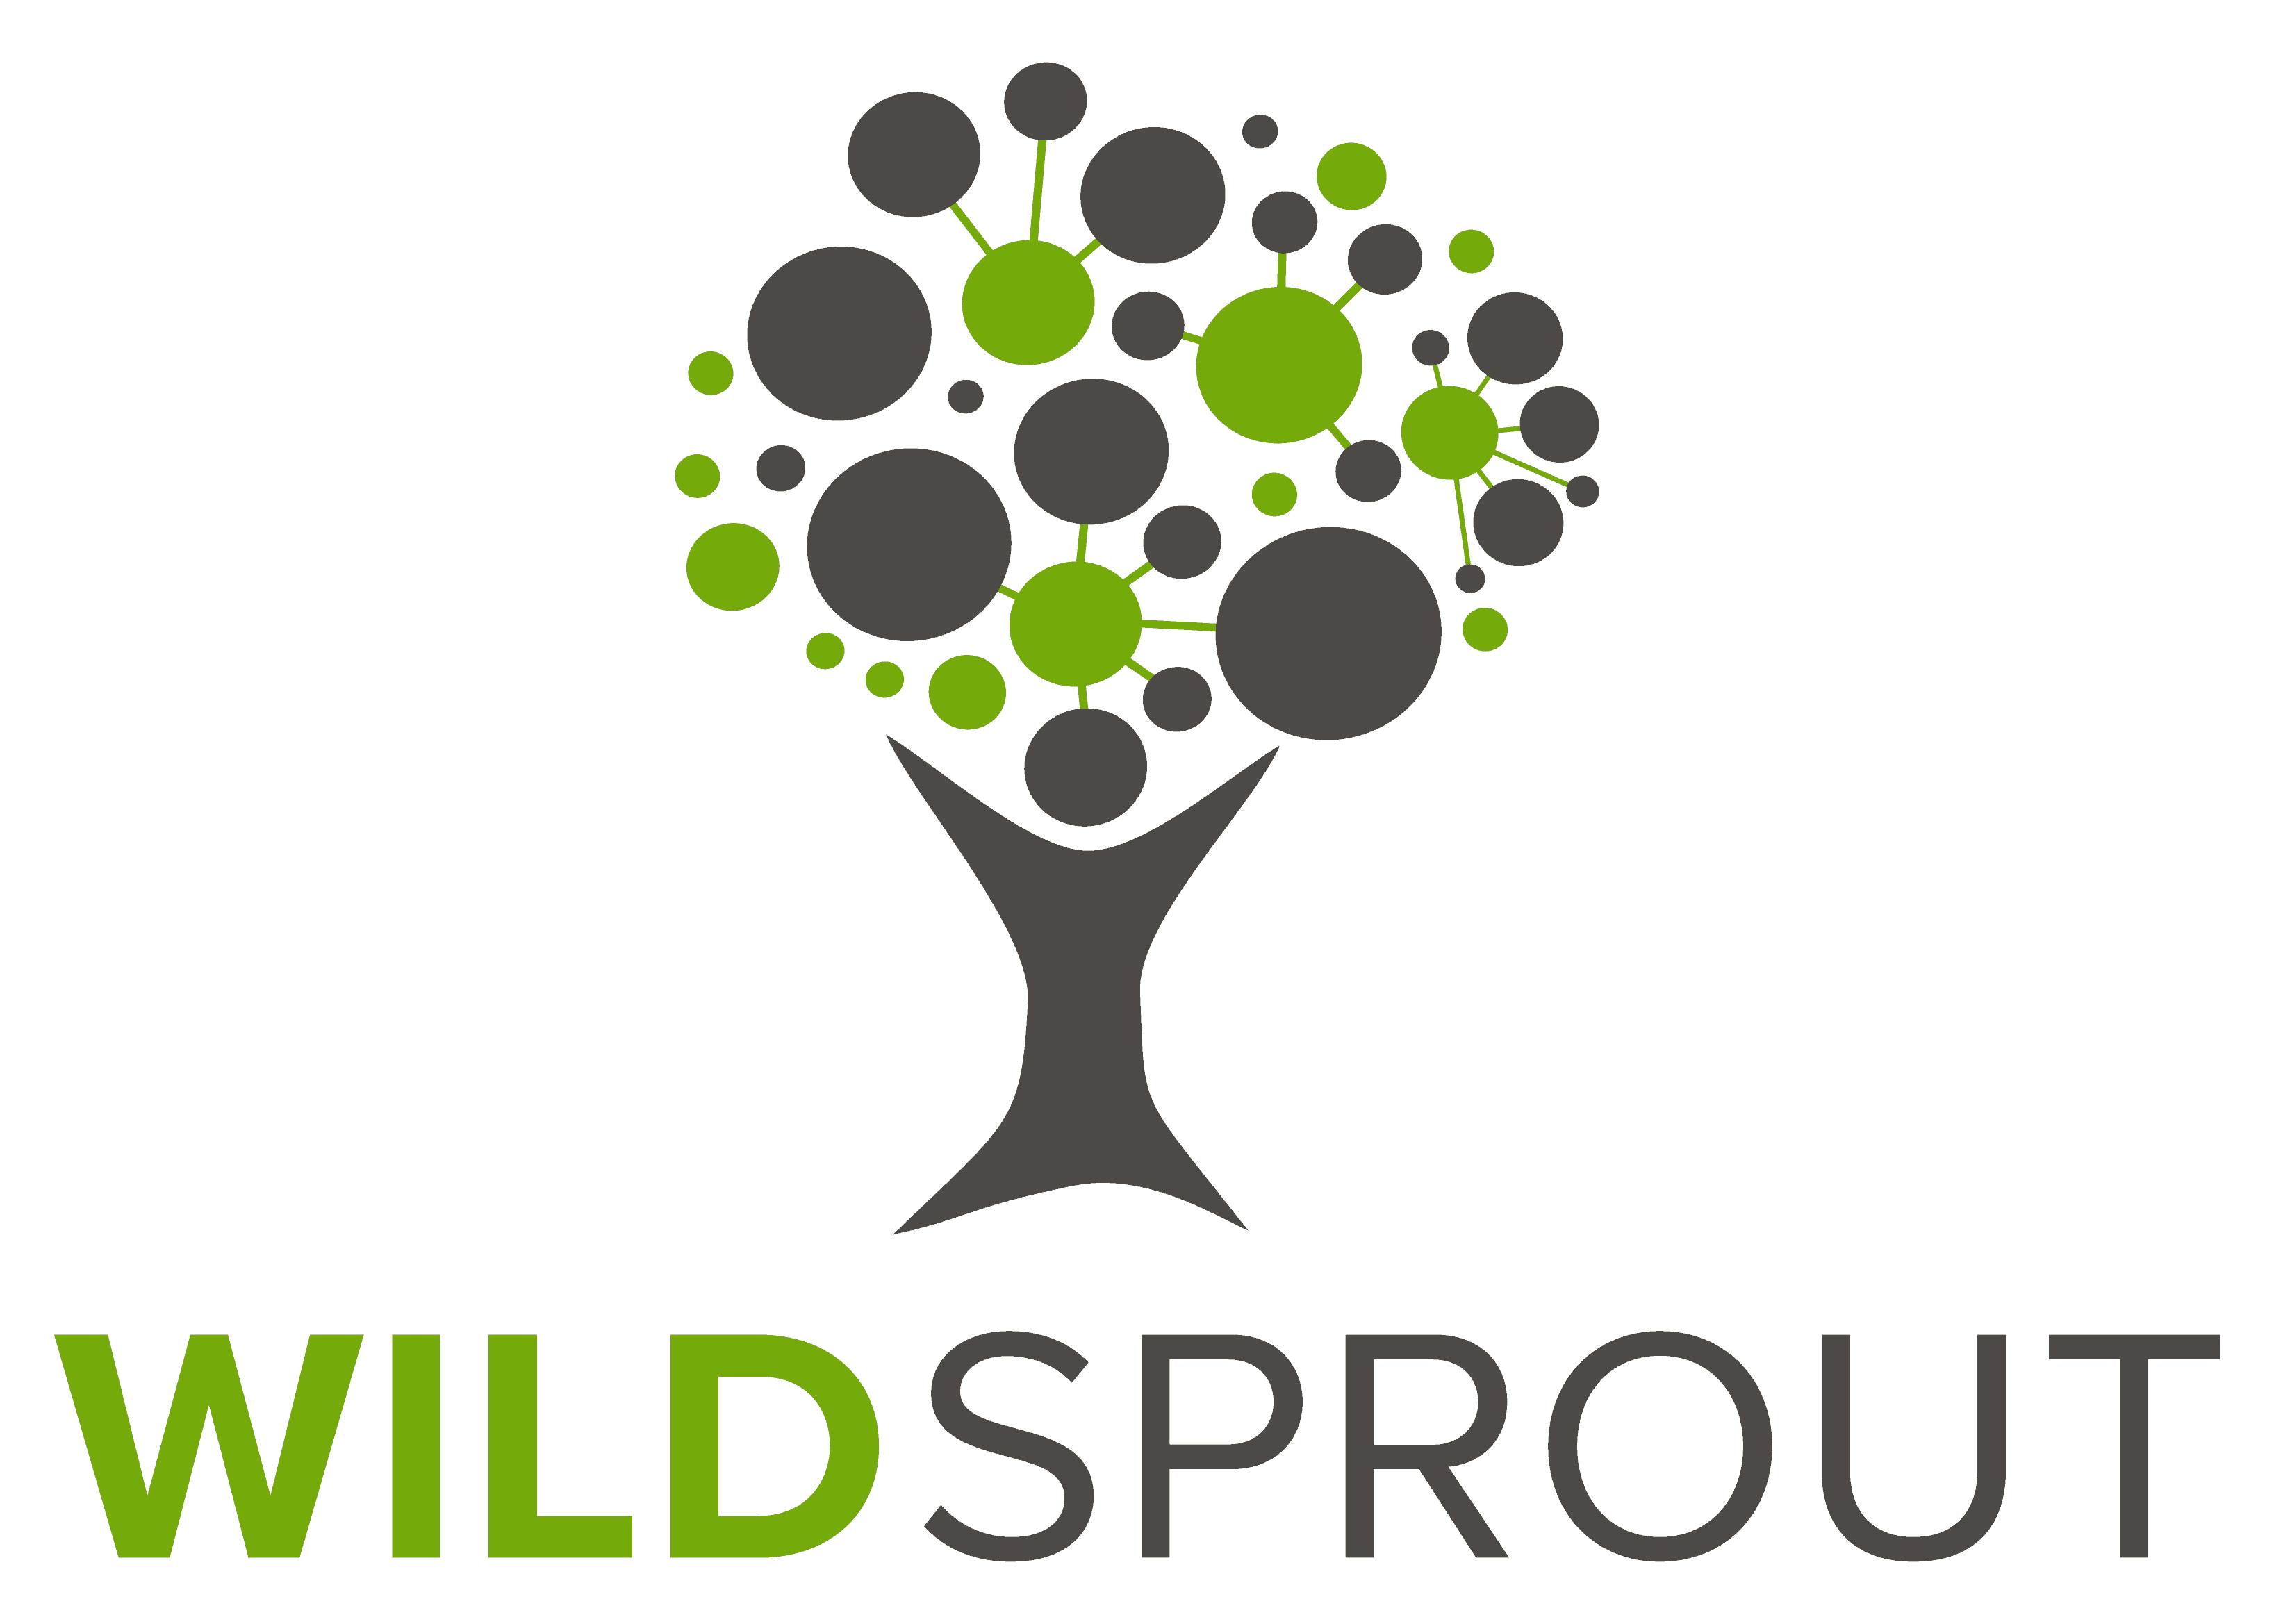 Wild Sprout